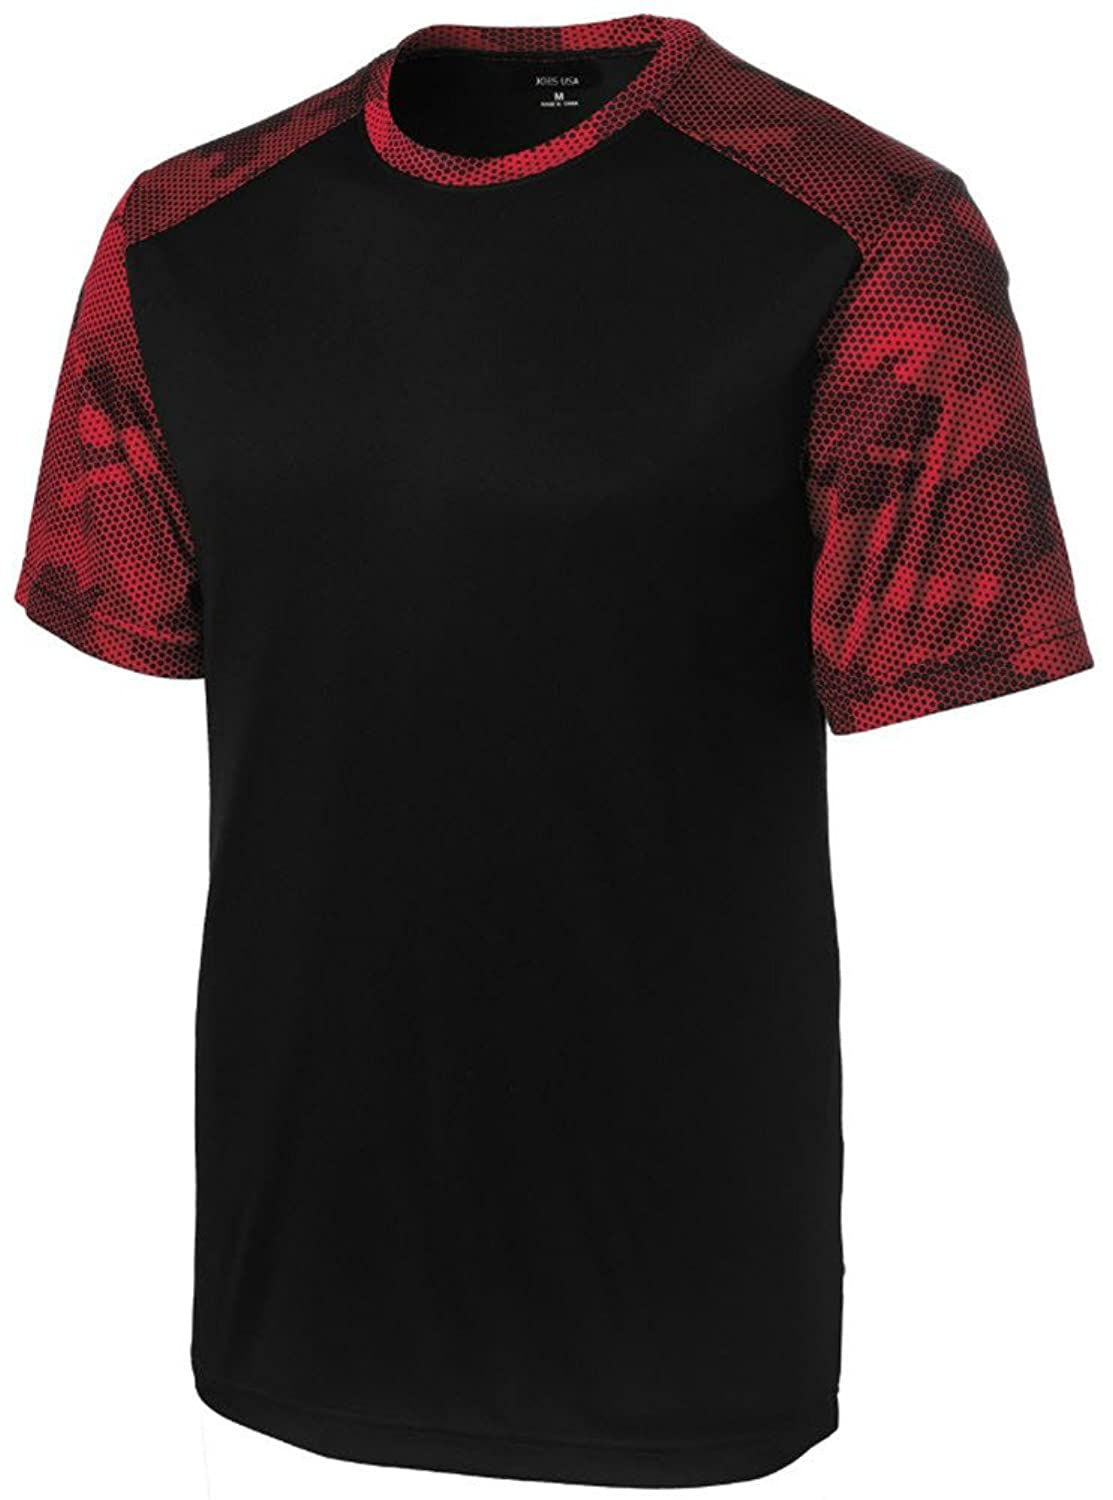 60a99f1b 70%OFF Men's CamoHex Moisture Wicking Athletic Training T-Shirts. XS-4XL